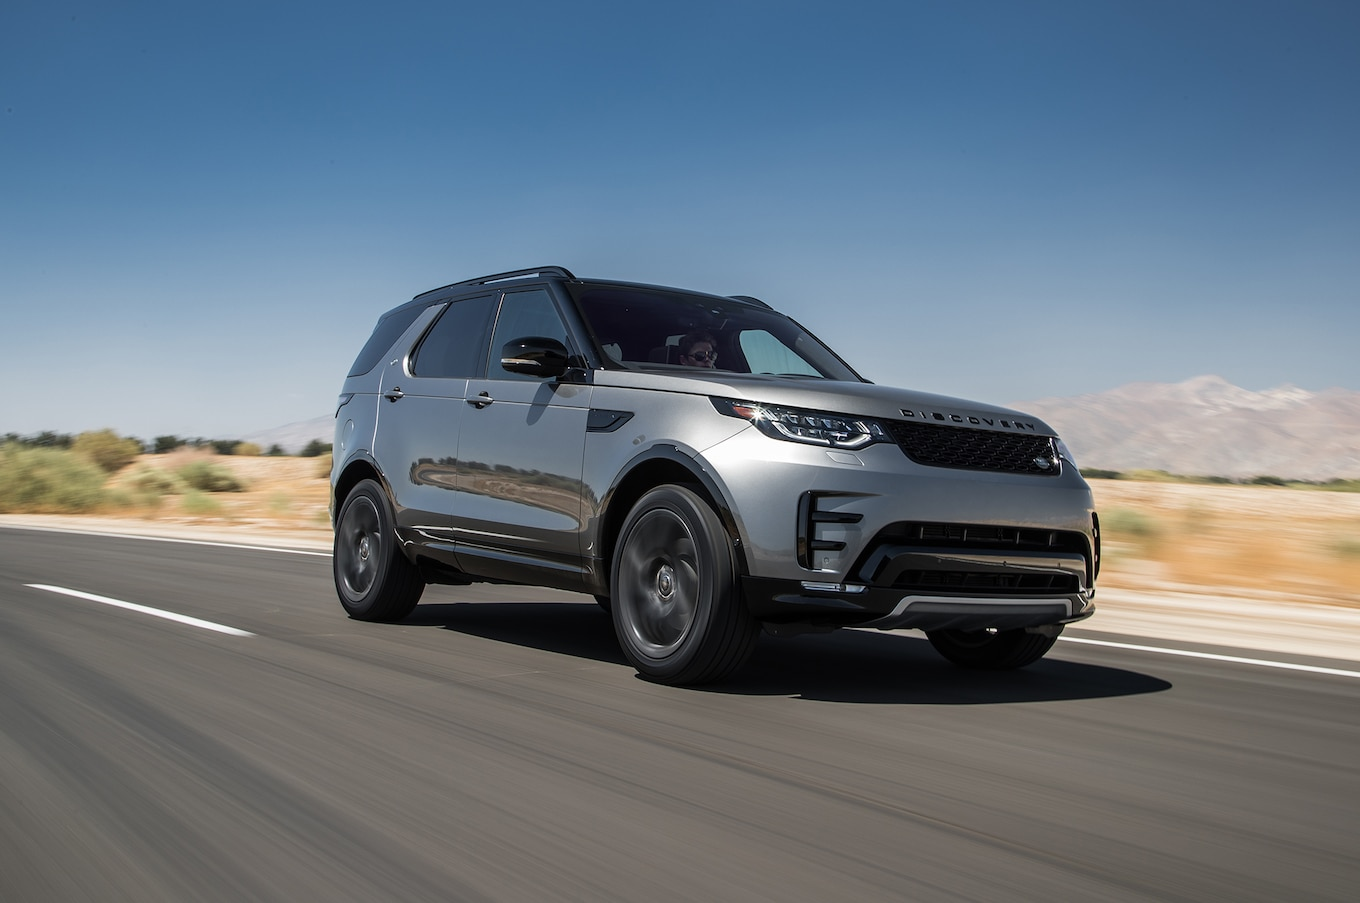 Land Rover Discovery 2018 Motor Trend SUV of the Year Finalist